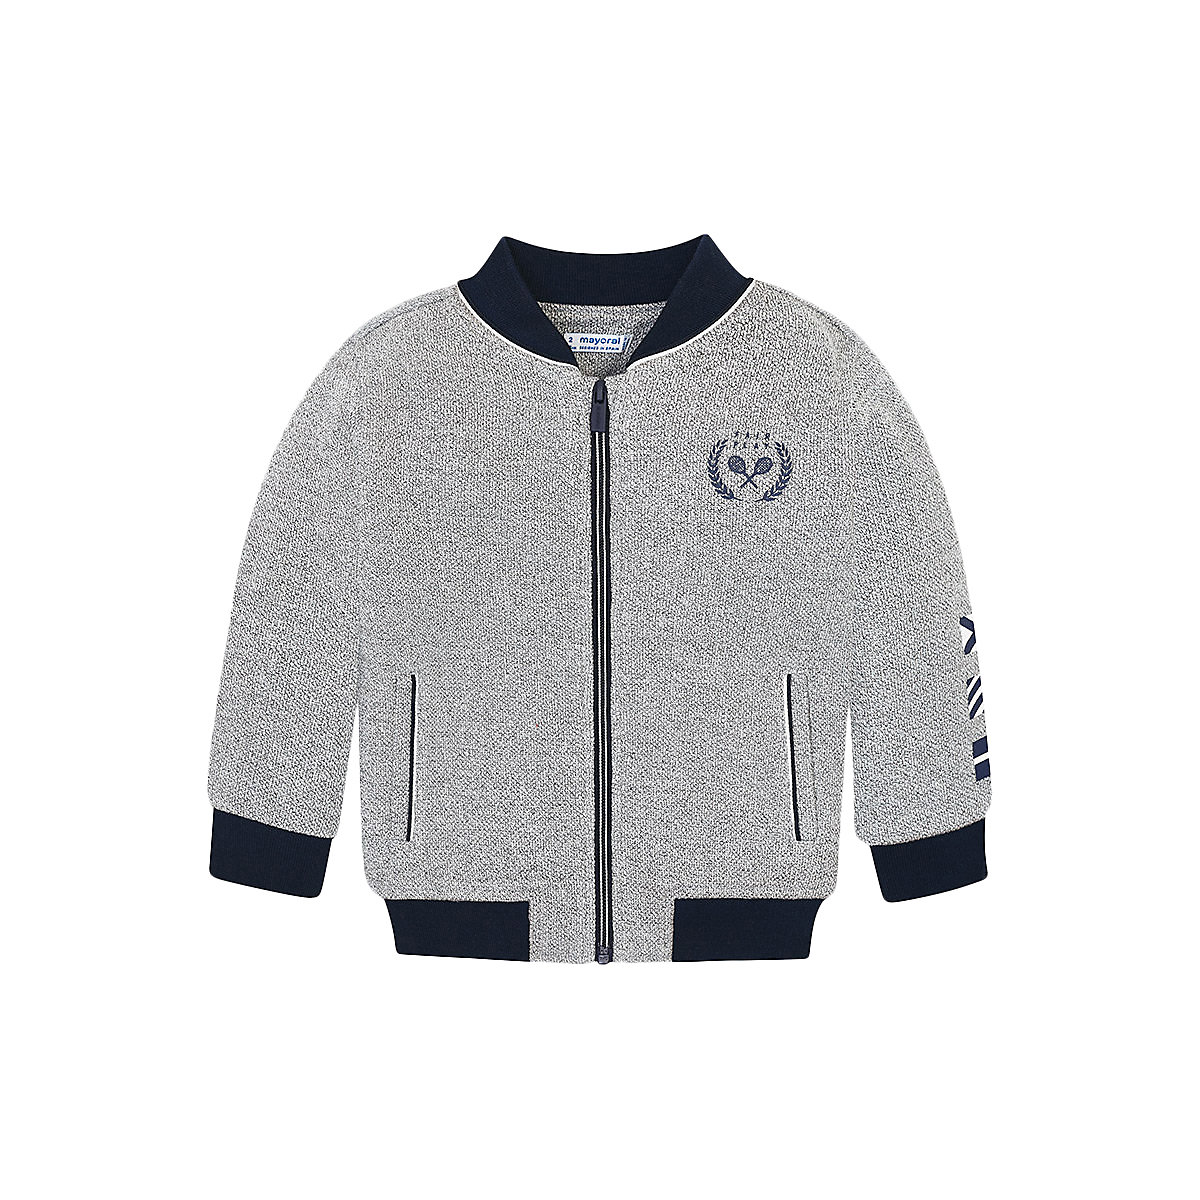 Sweaters MAYORAL 10693269 sweatshirt hoodies for kids cardigan clothes for girls and boys cardigan for boys kotmarkot 15508 kid clothes